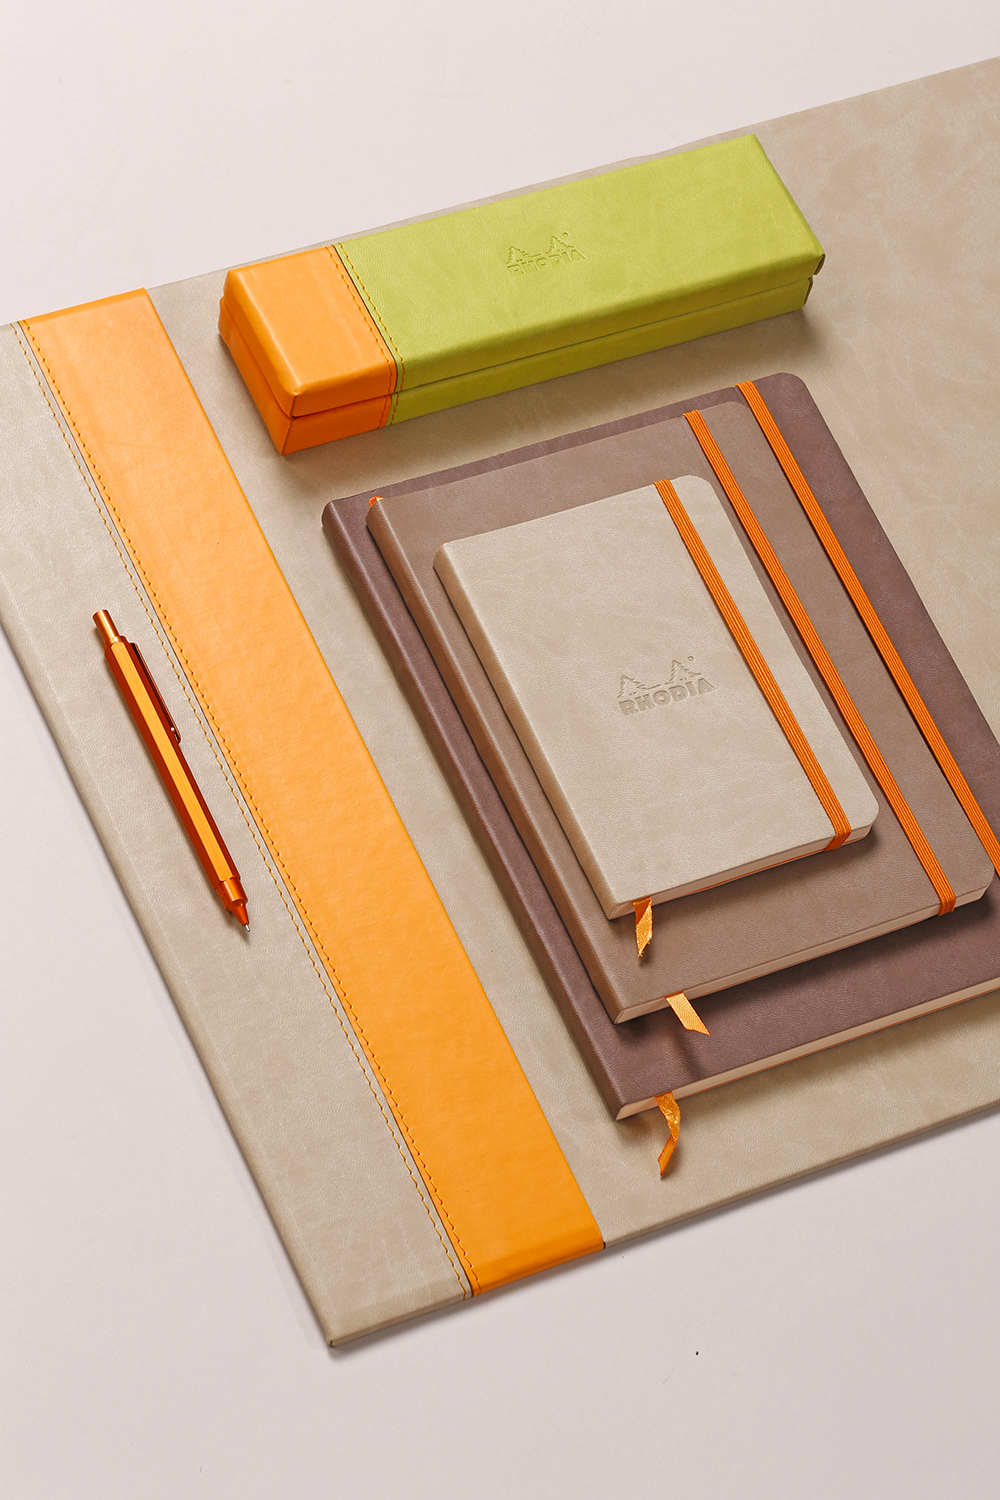 rhodia home office ambiance beige marron orange et vert rhodia homeoffice office. Black Bedroom Furniture Sets. Home Design Ideas